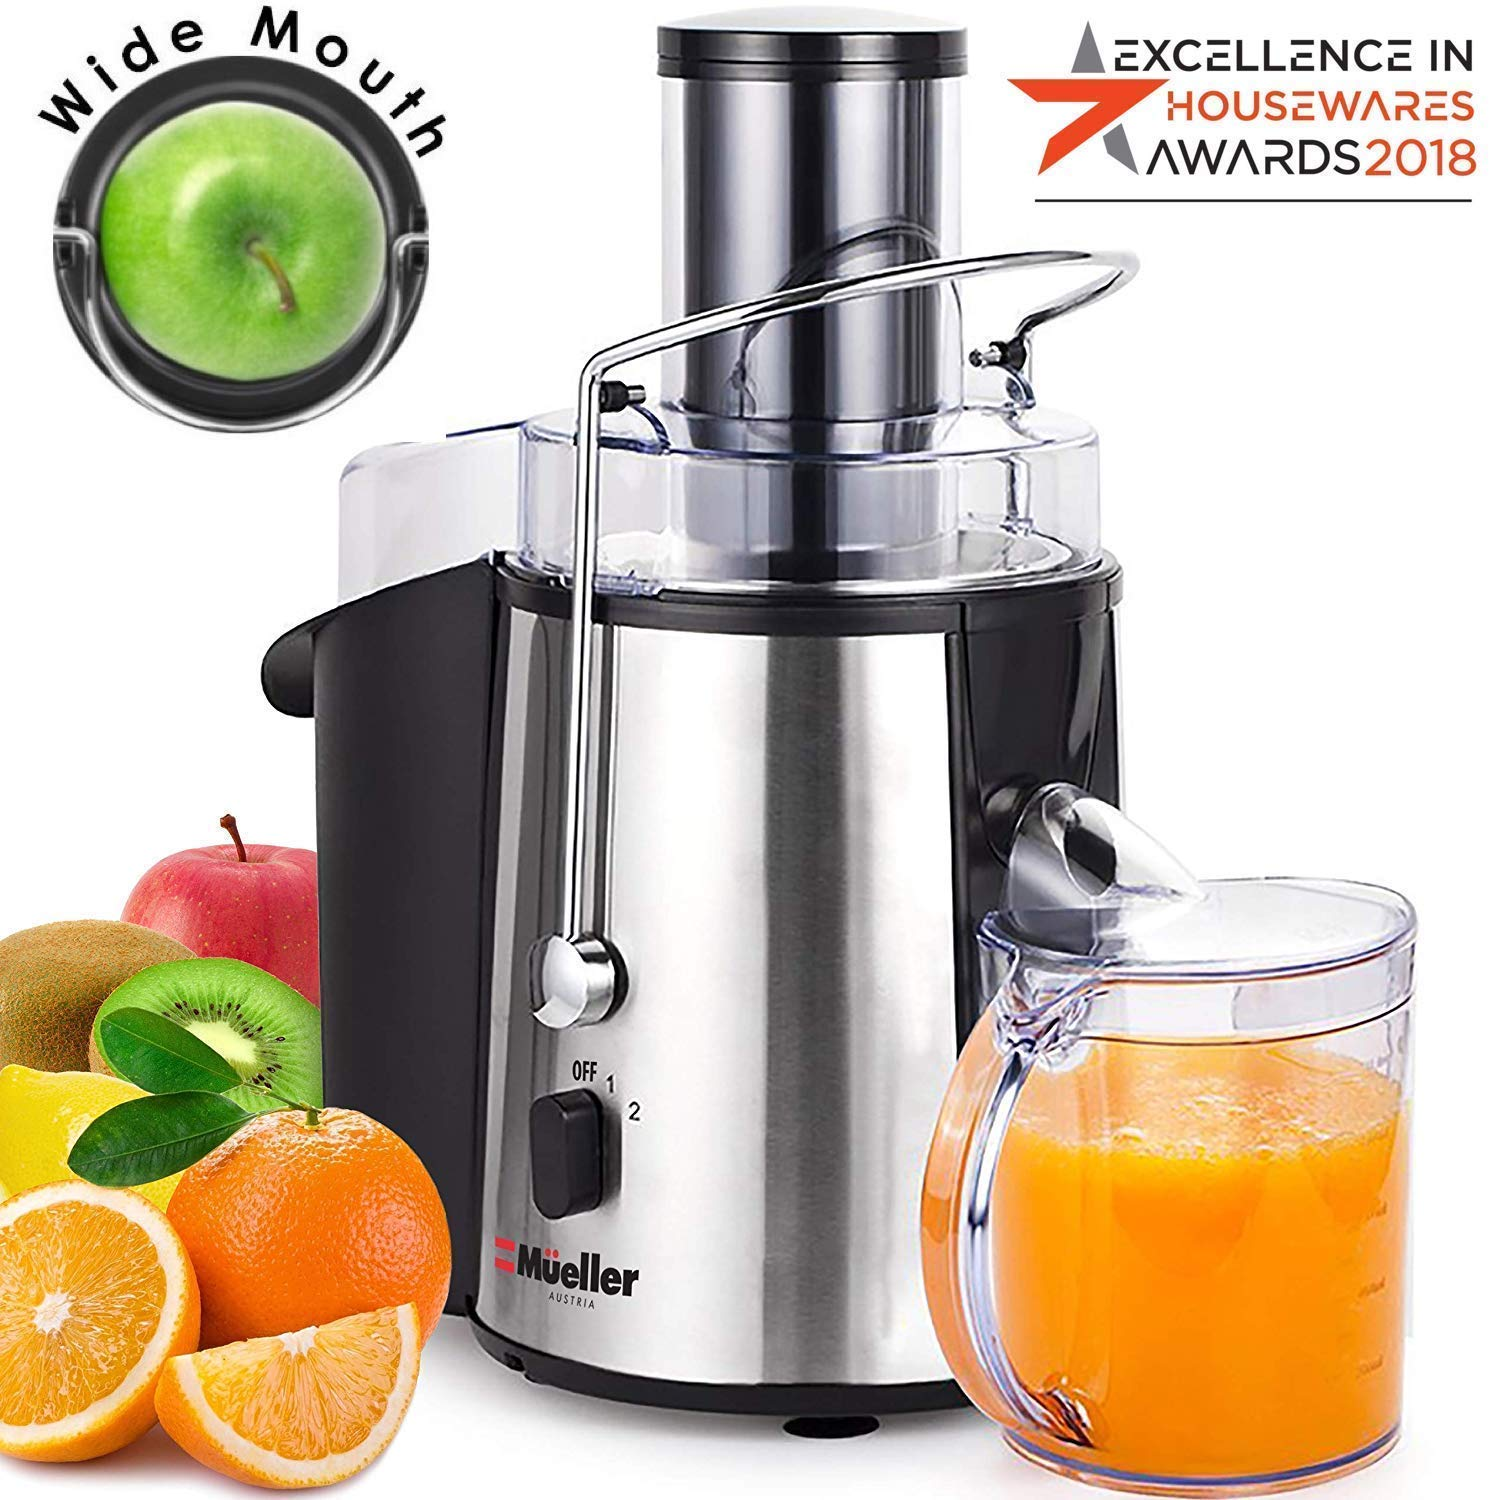 Mueller Austria Juicer Ultra 1100W Power, Easy Clean Extractor Press Centrifugal Juicing Machine, Wide 3″ Feed Chute for Whole Fruit Vegetable, Anti-drip, High Quality, BPA-Free, Large, Silver